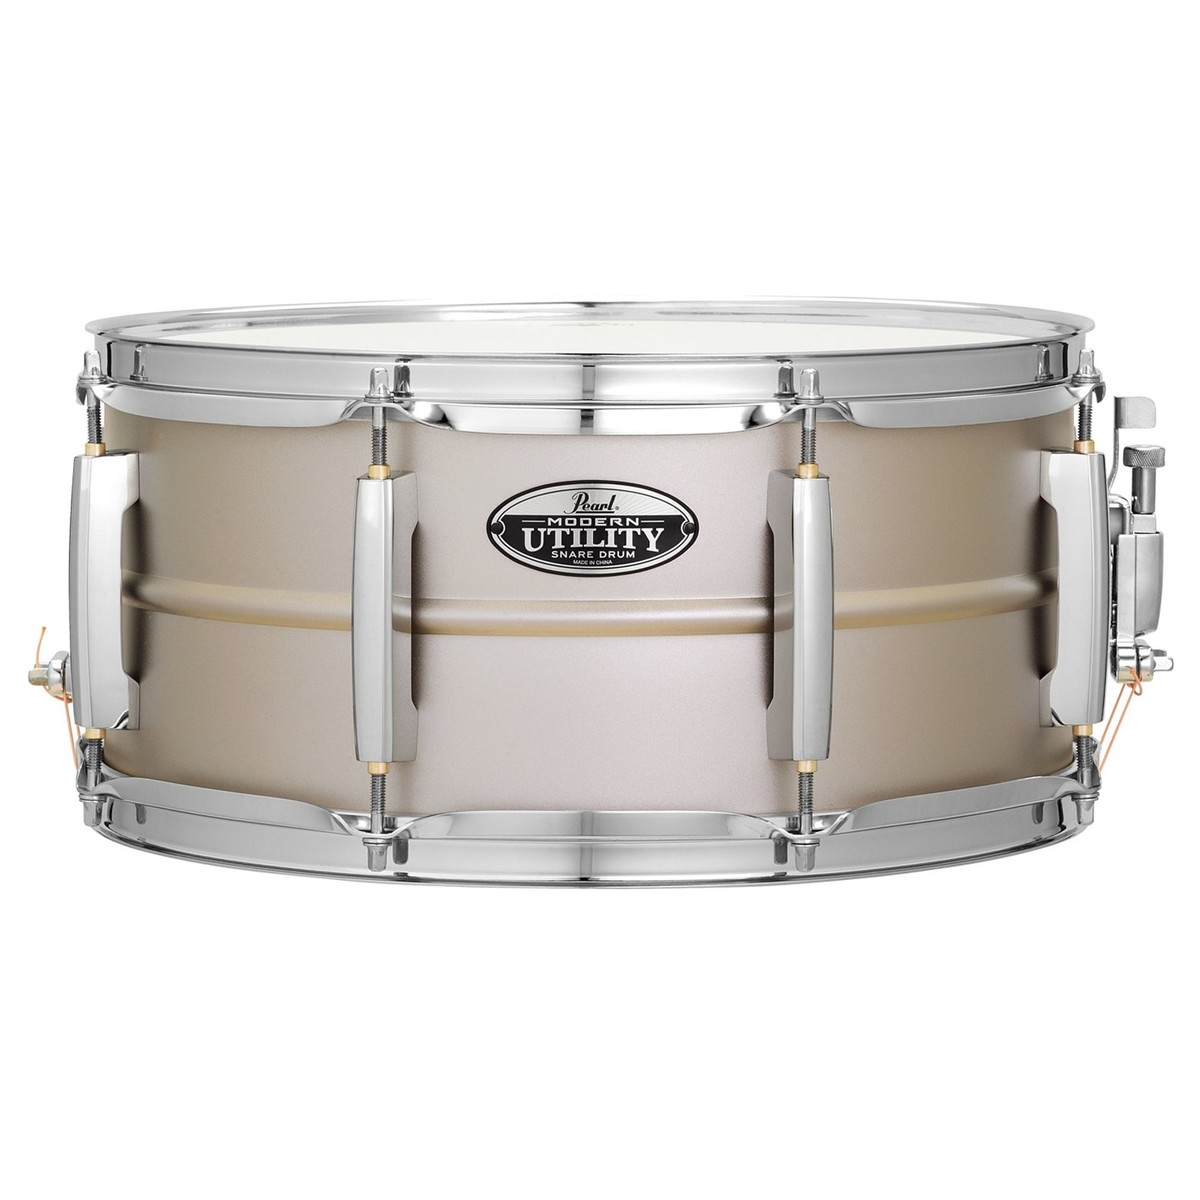 pearl modern utility steel 14 39 39 x 5 39 39 snare drum at gear4music. Black Bedroom Furniture Sets. Home Design Ideas